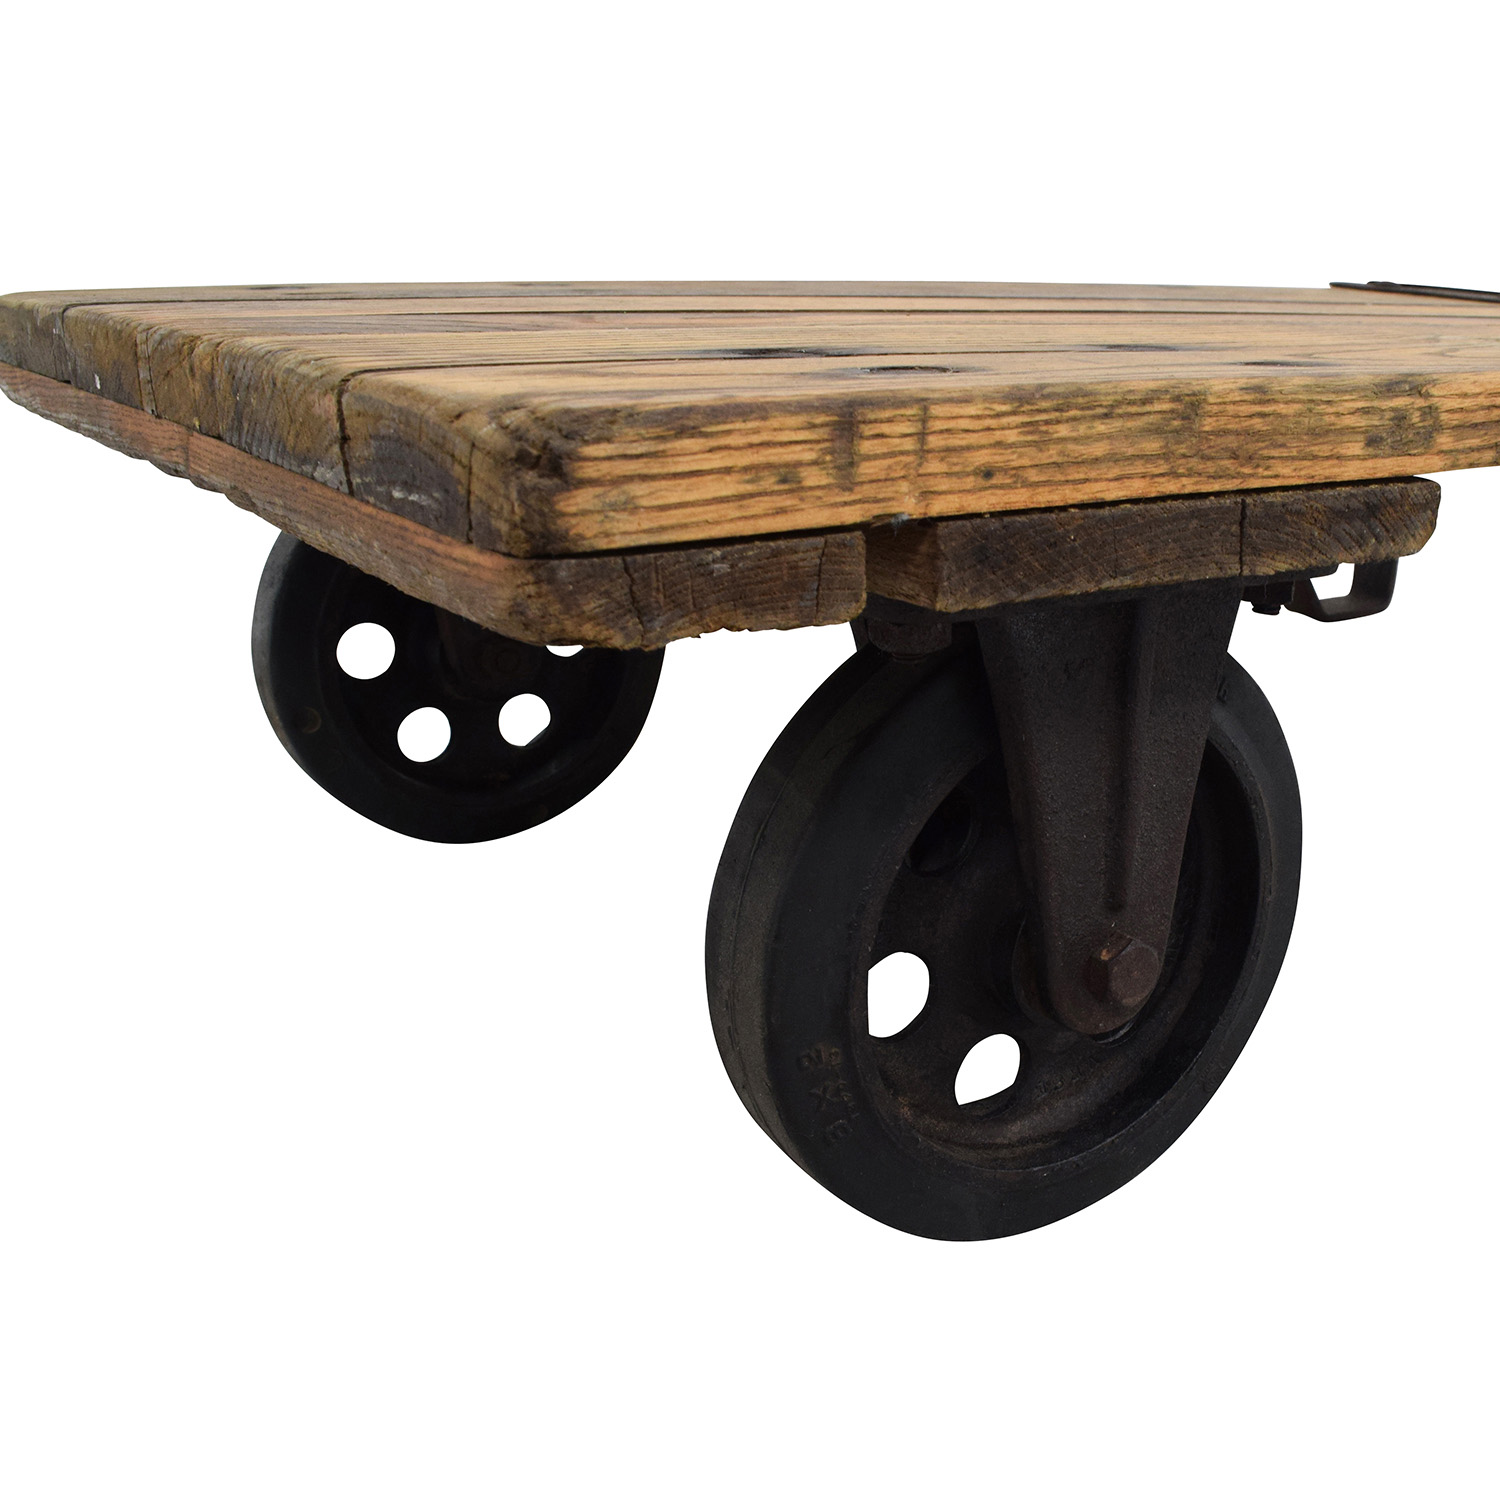 Thomas Truck & Caster Co Thomas Truck & Caster Co Restored Industrial Coffee Table nj